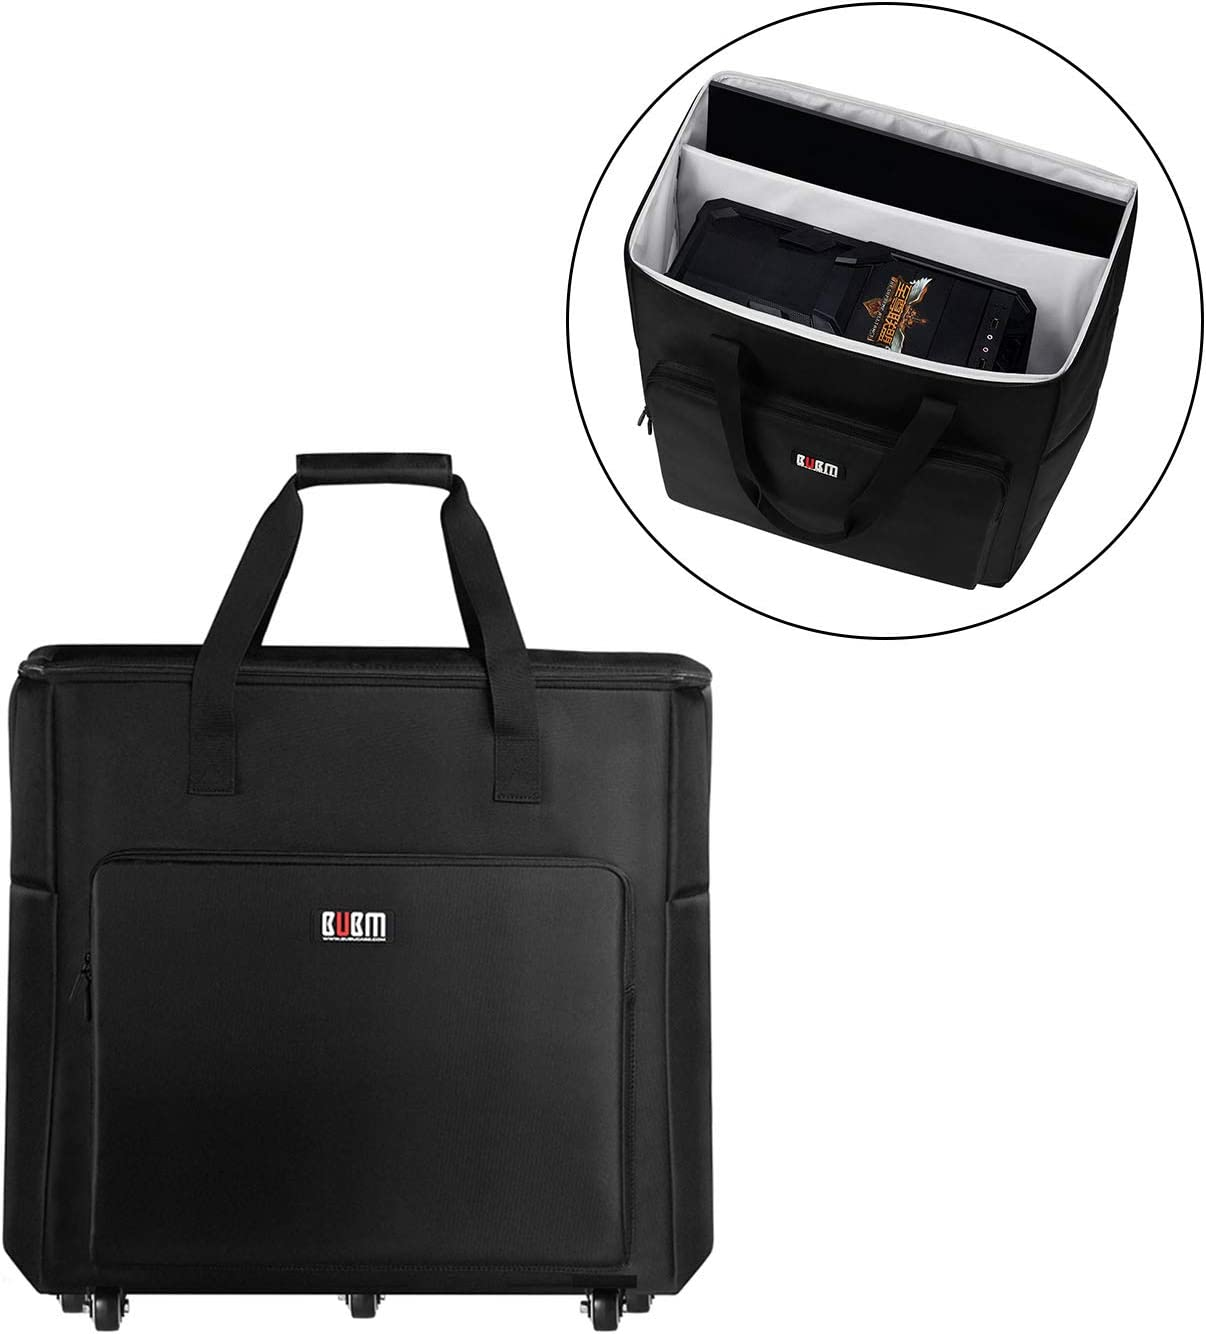 Buwico Desktop PC Computer Travel Storage Carrying Case Bag with Wheels for Computer Main Processor Case, Monitor, Keyboard and Accessories (24 Inch)